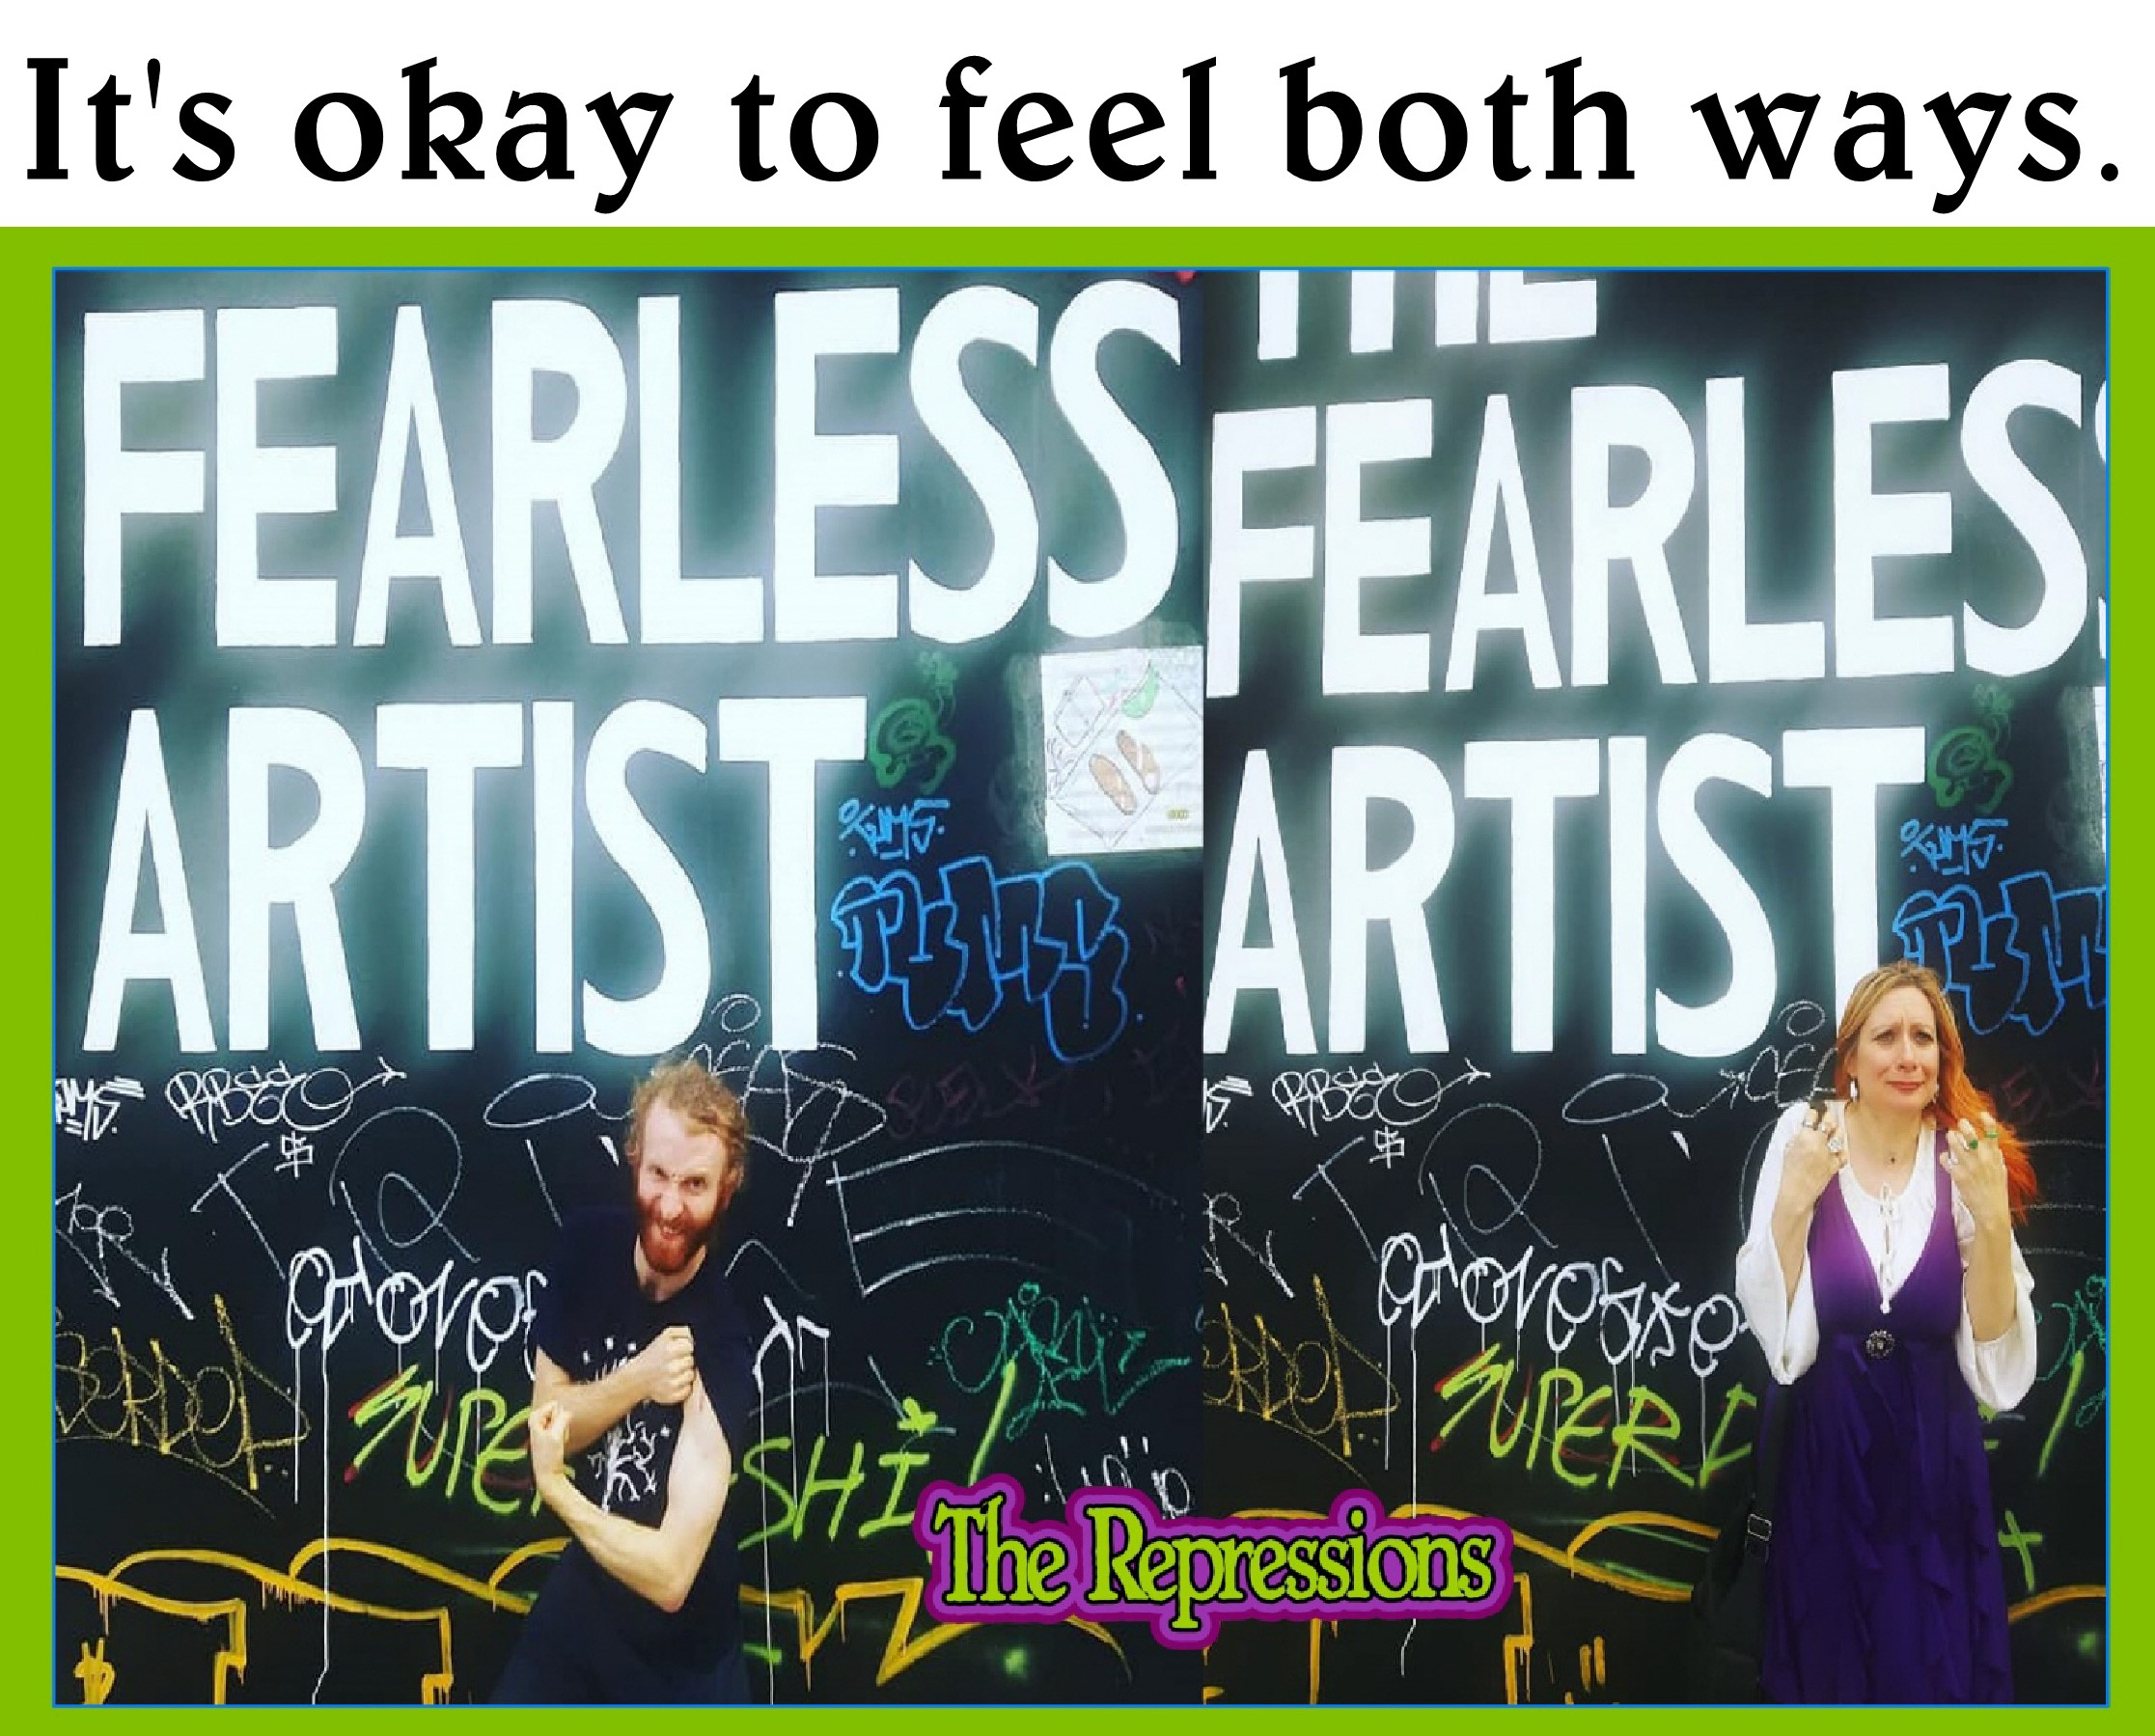 Fearless Artist Both Ways